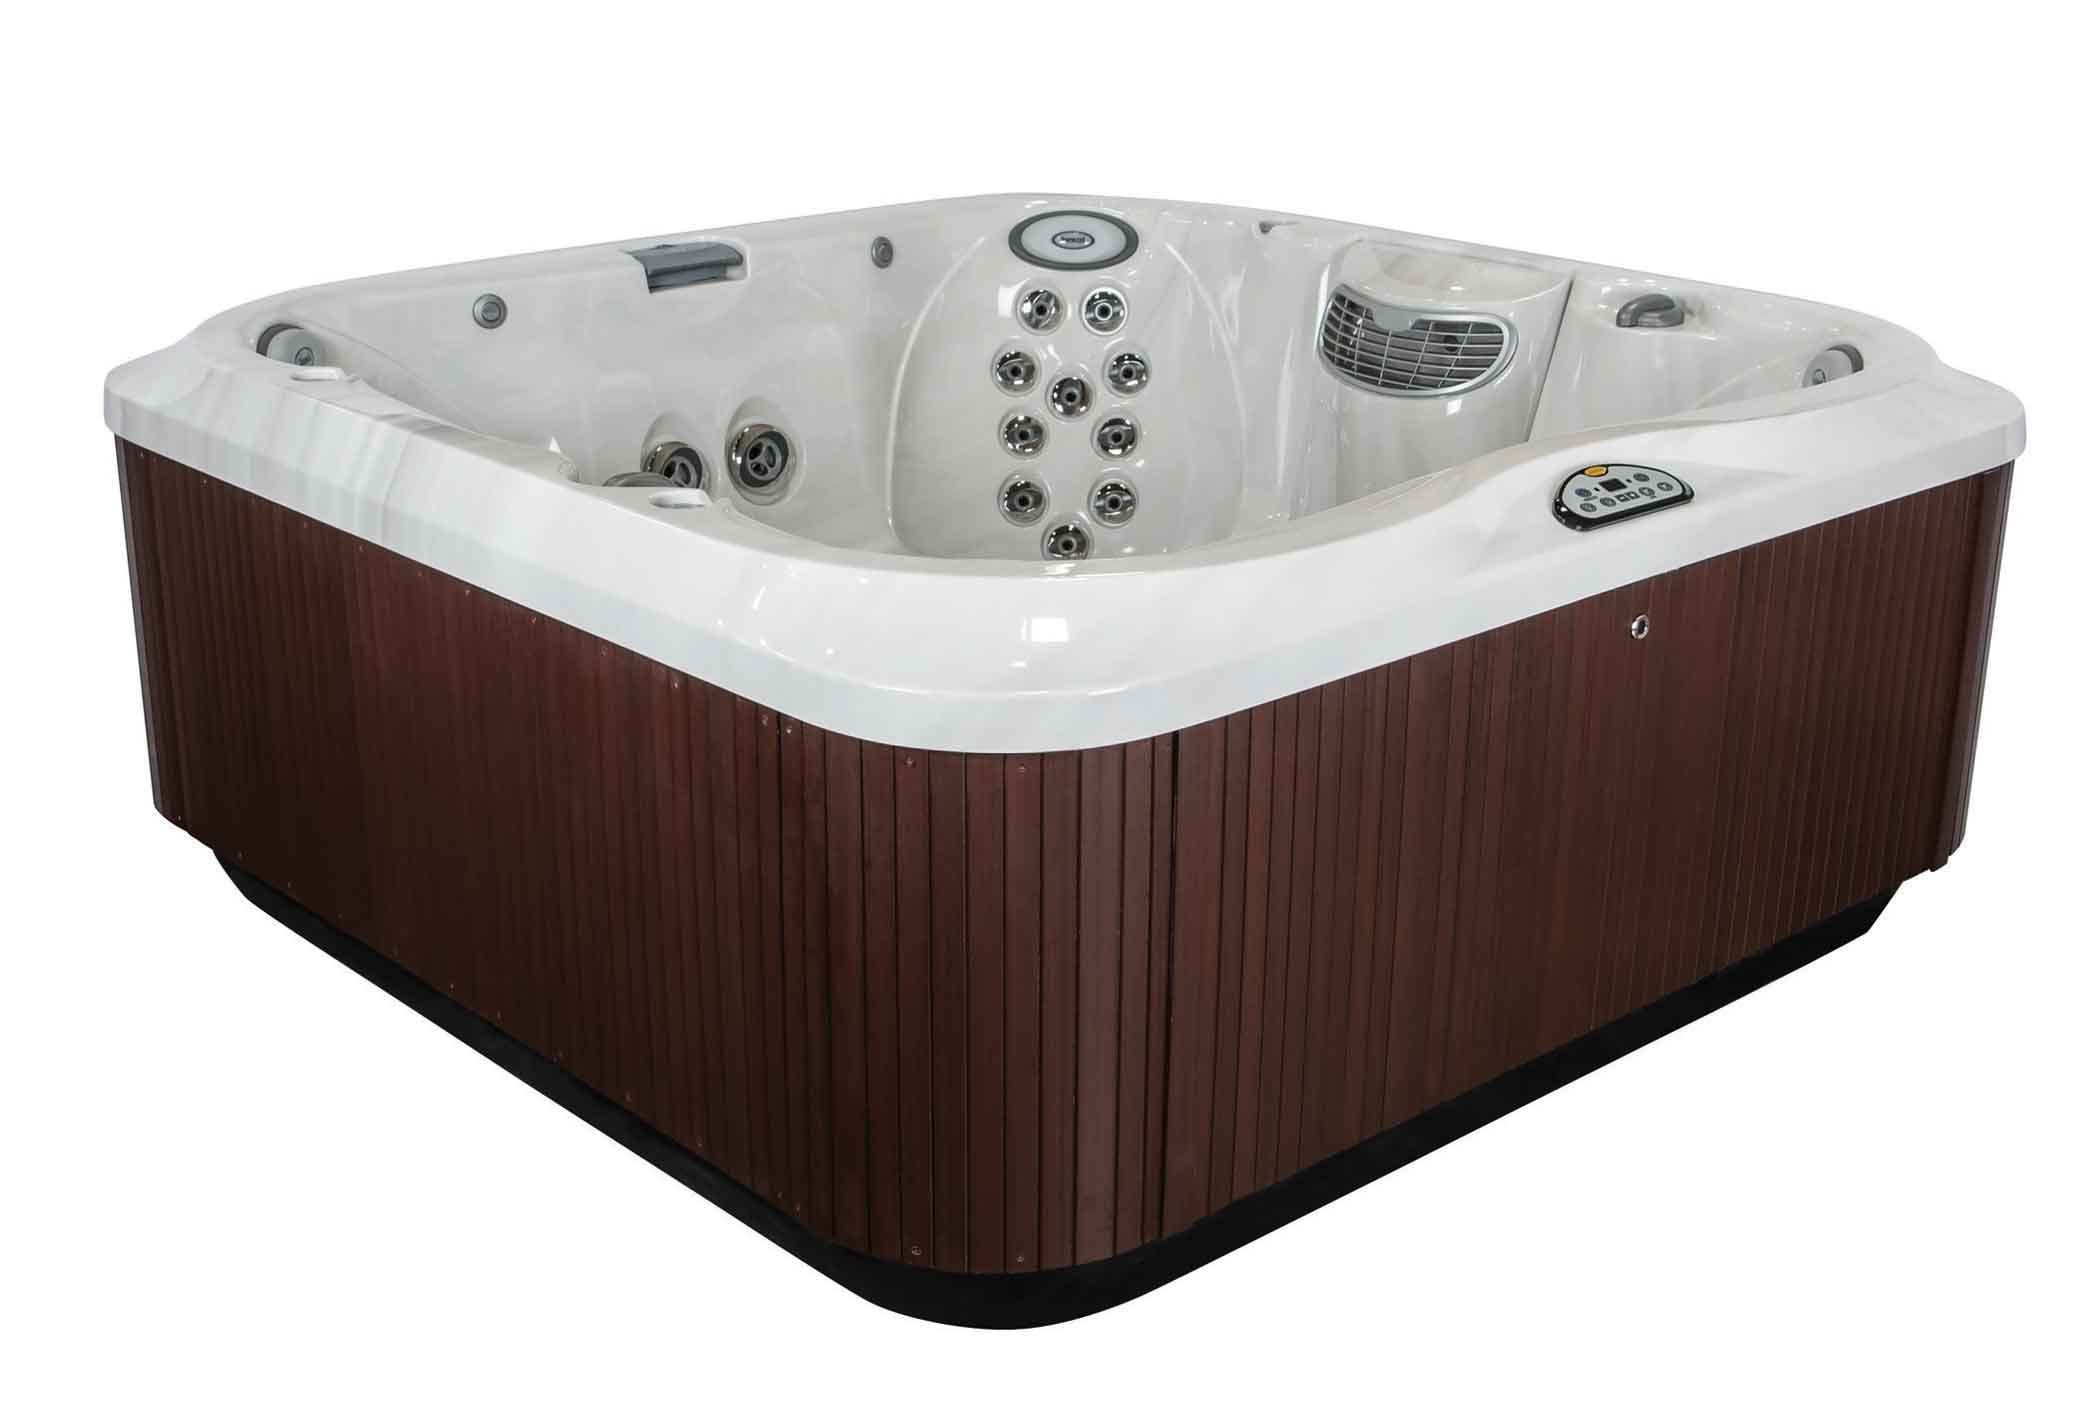 J-385 6-7 Seat Jacuzzi Hot Tub for Sale in New Hampshire